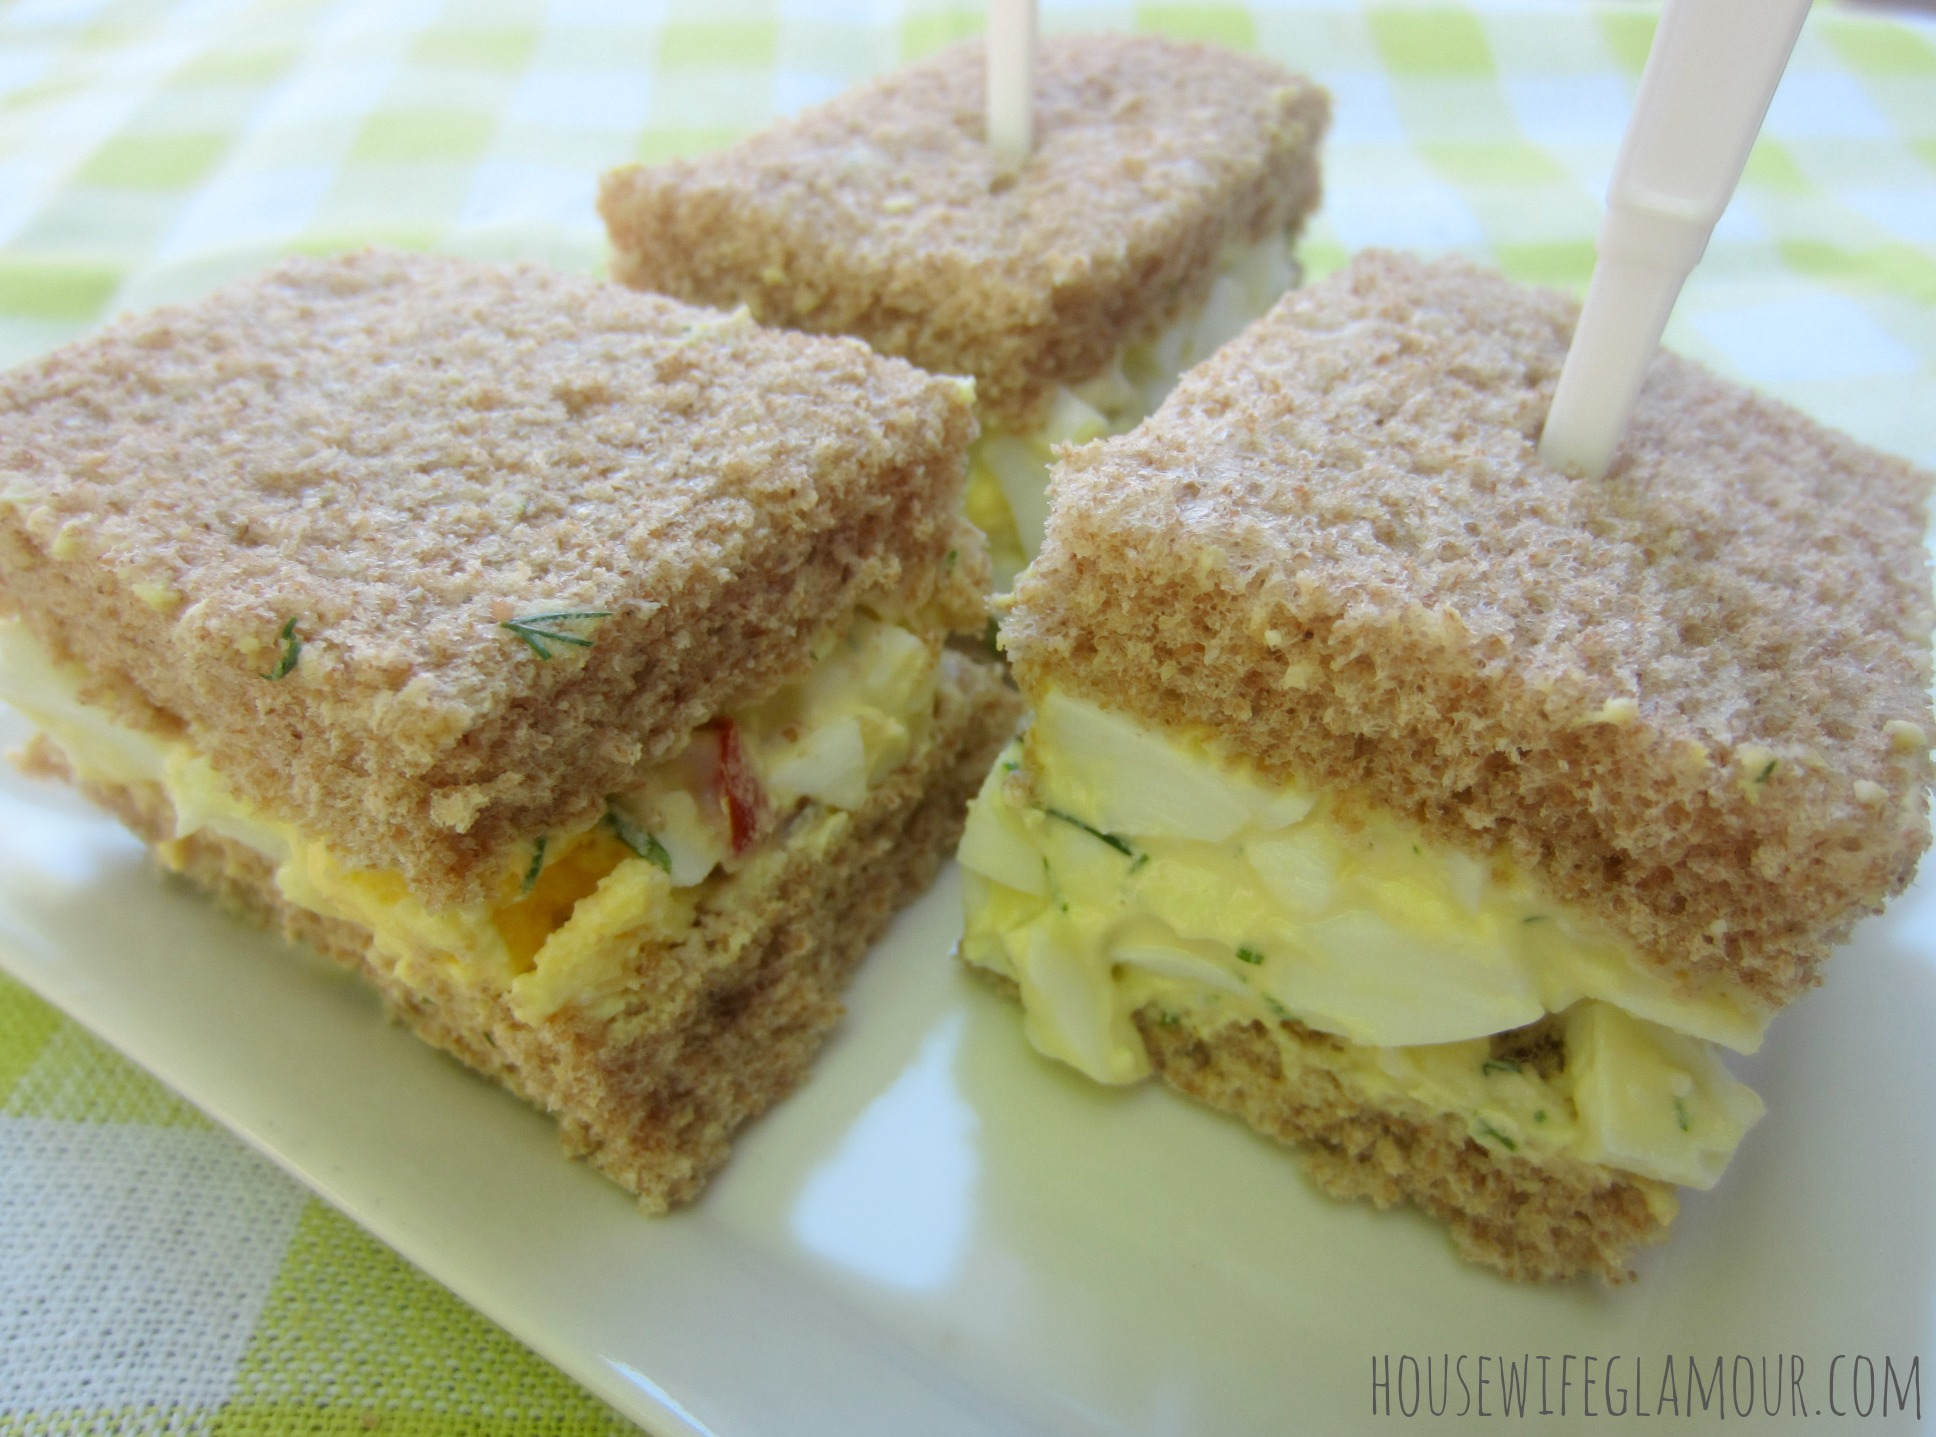 Lighted Up Healthy Egg Salad Sandwich